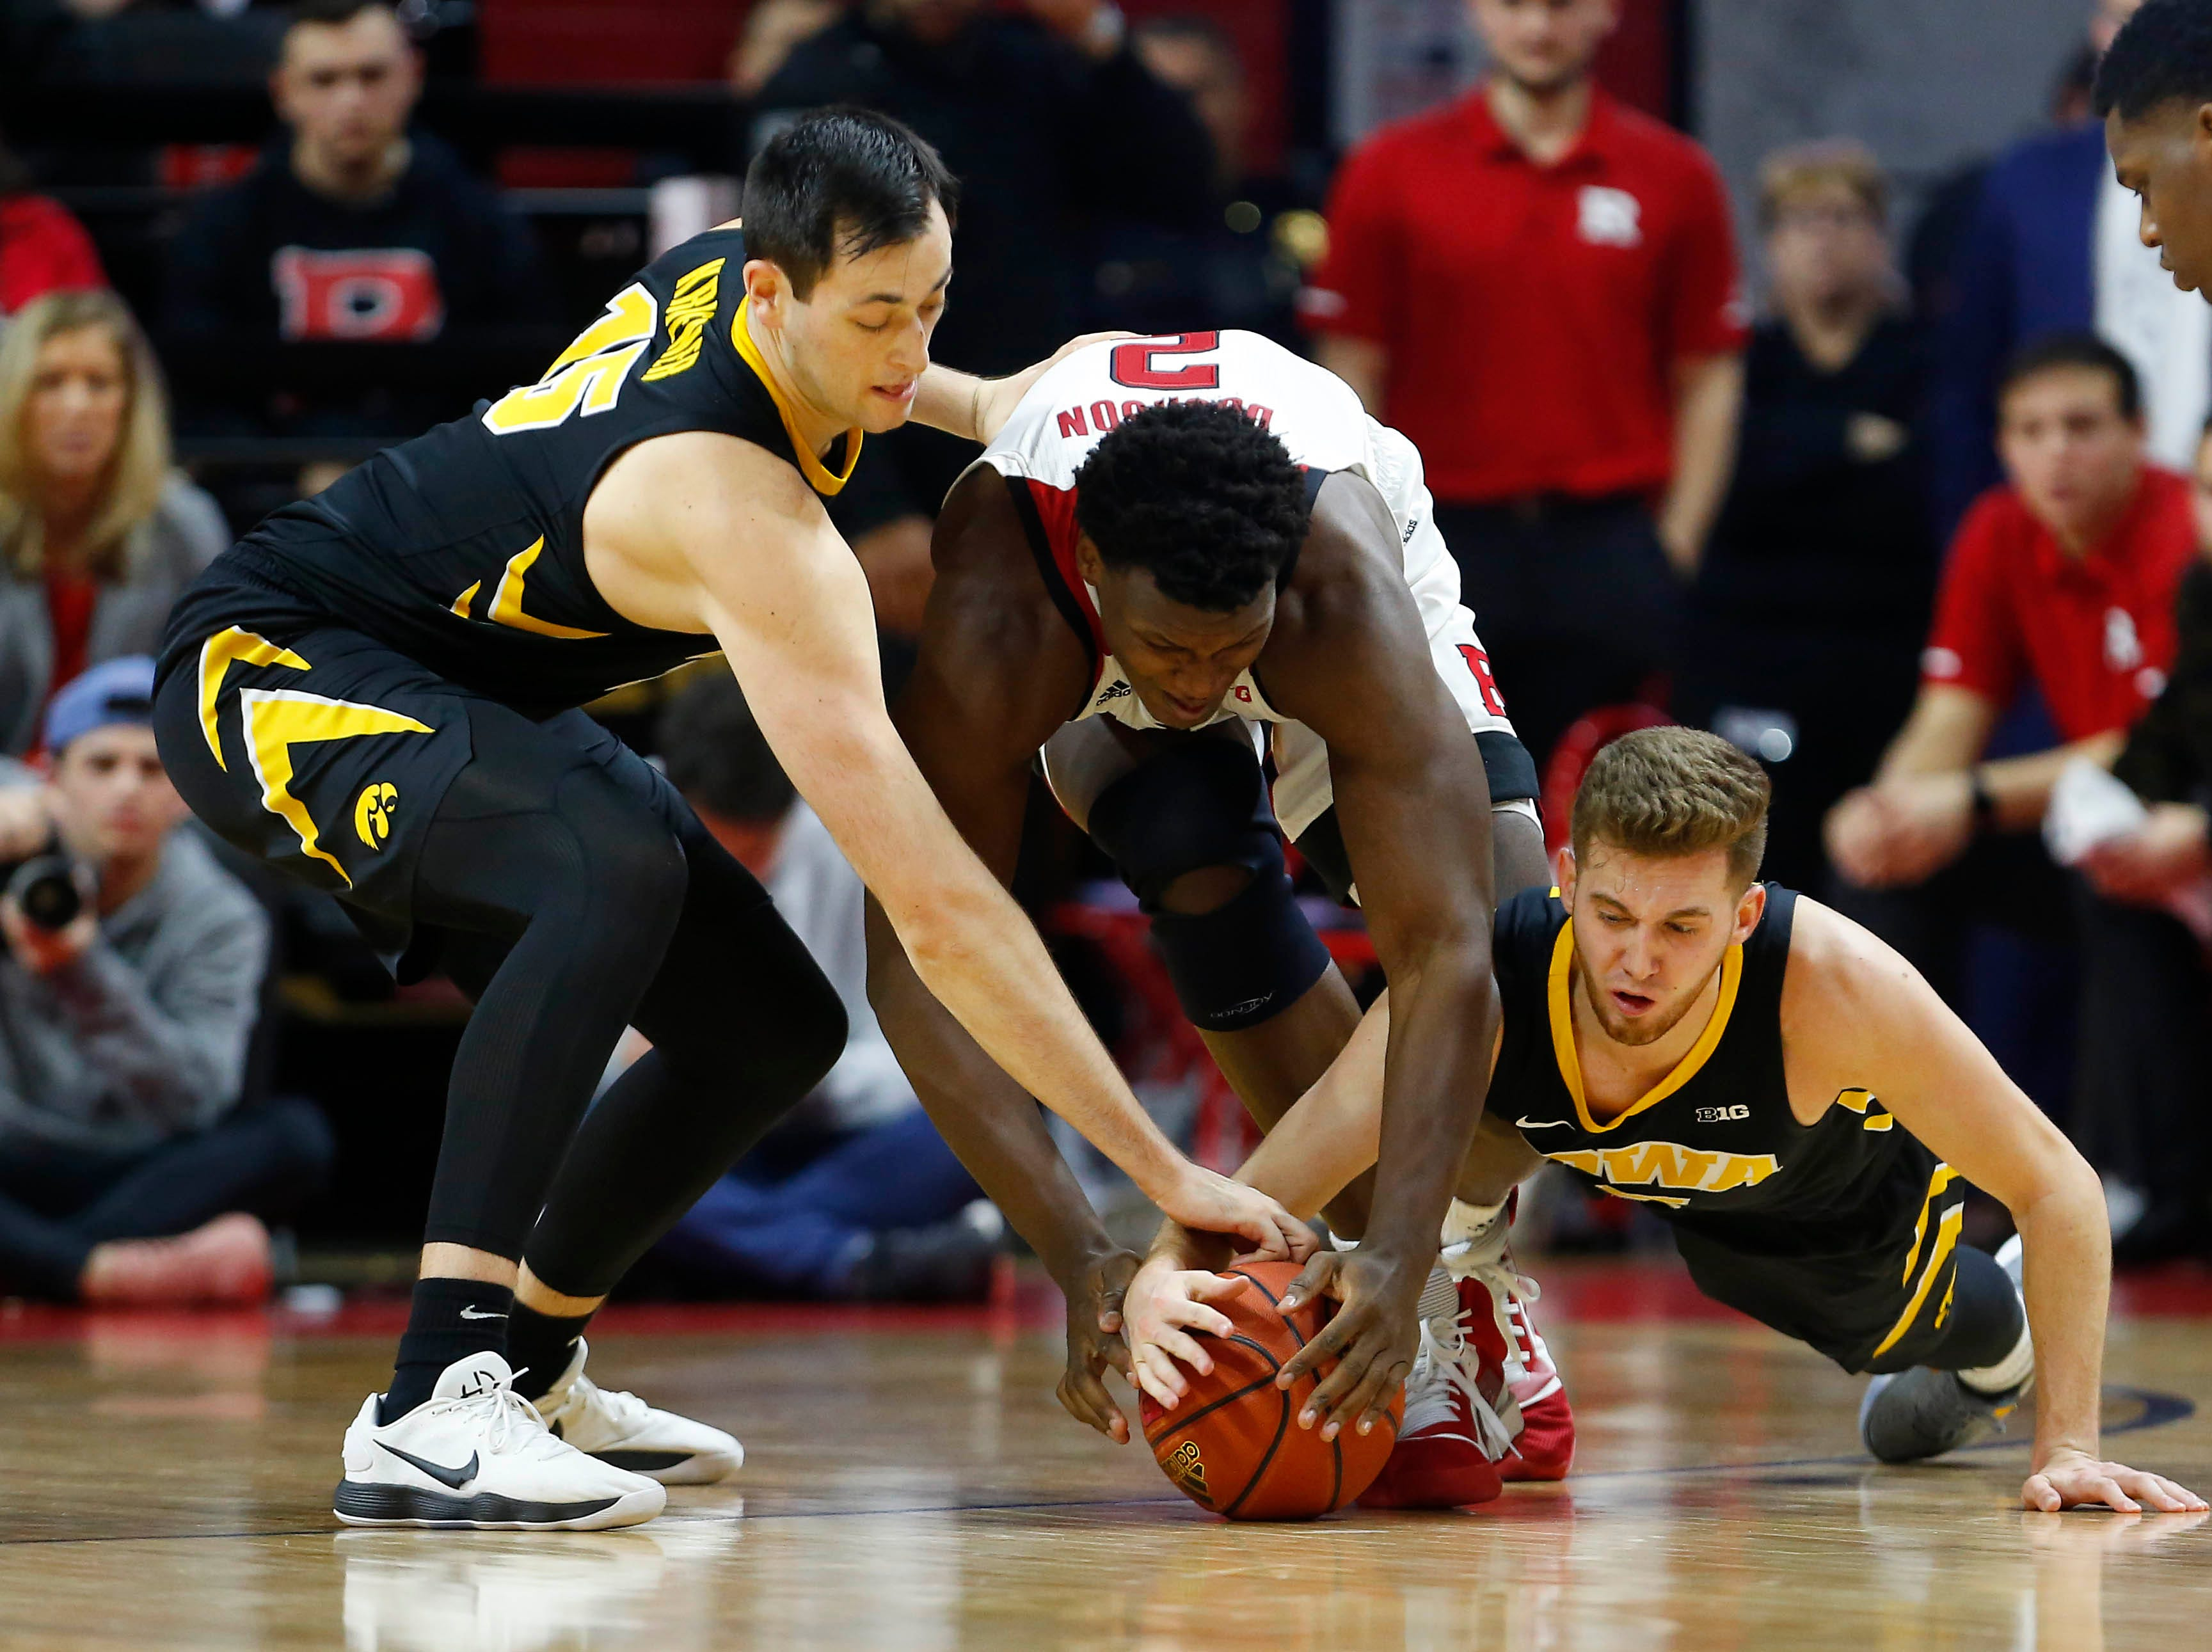 Iowa Hawkeyes forward Ryan Kriener (15) and guard Jordan Bohannon (3) battle Rutgers Scarlet Knights center Shaquille Doorson (2) for a loose ball during the second half at Rutgers Athletic Center (RAC). Mandatory Credit: Noah K. Murray-USA TODAY Sports